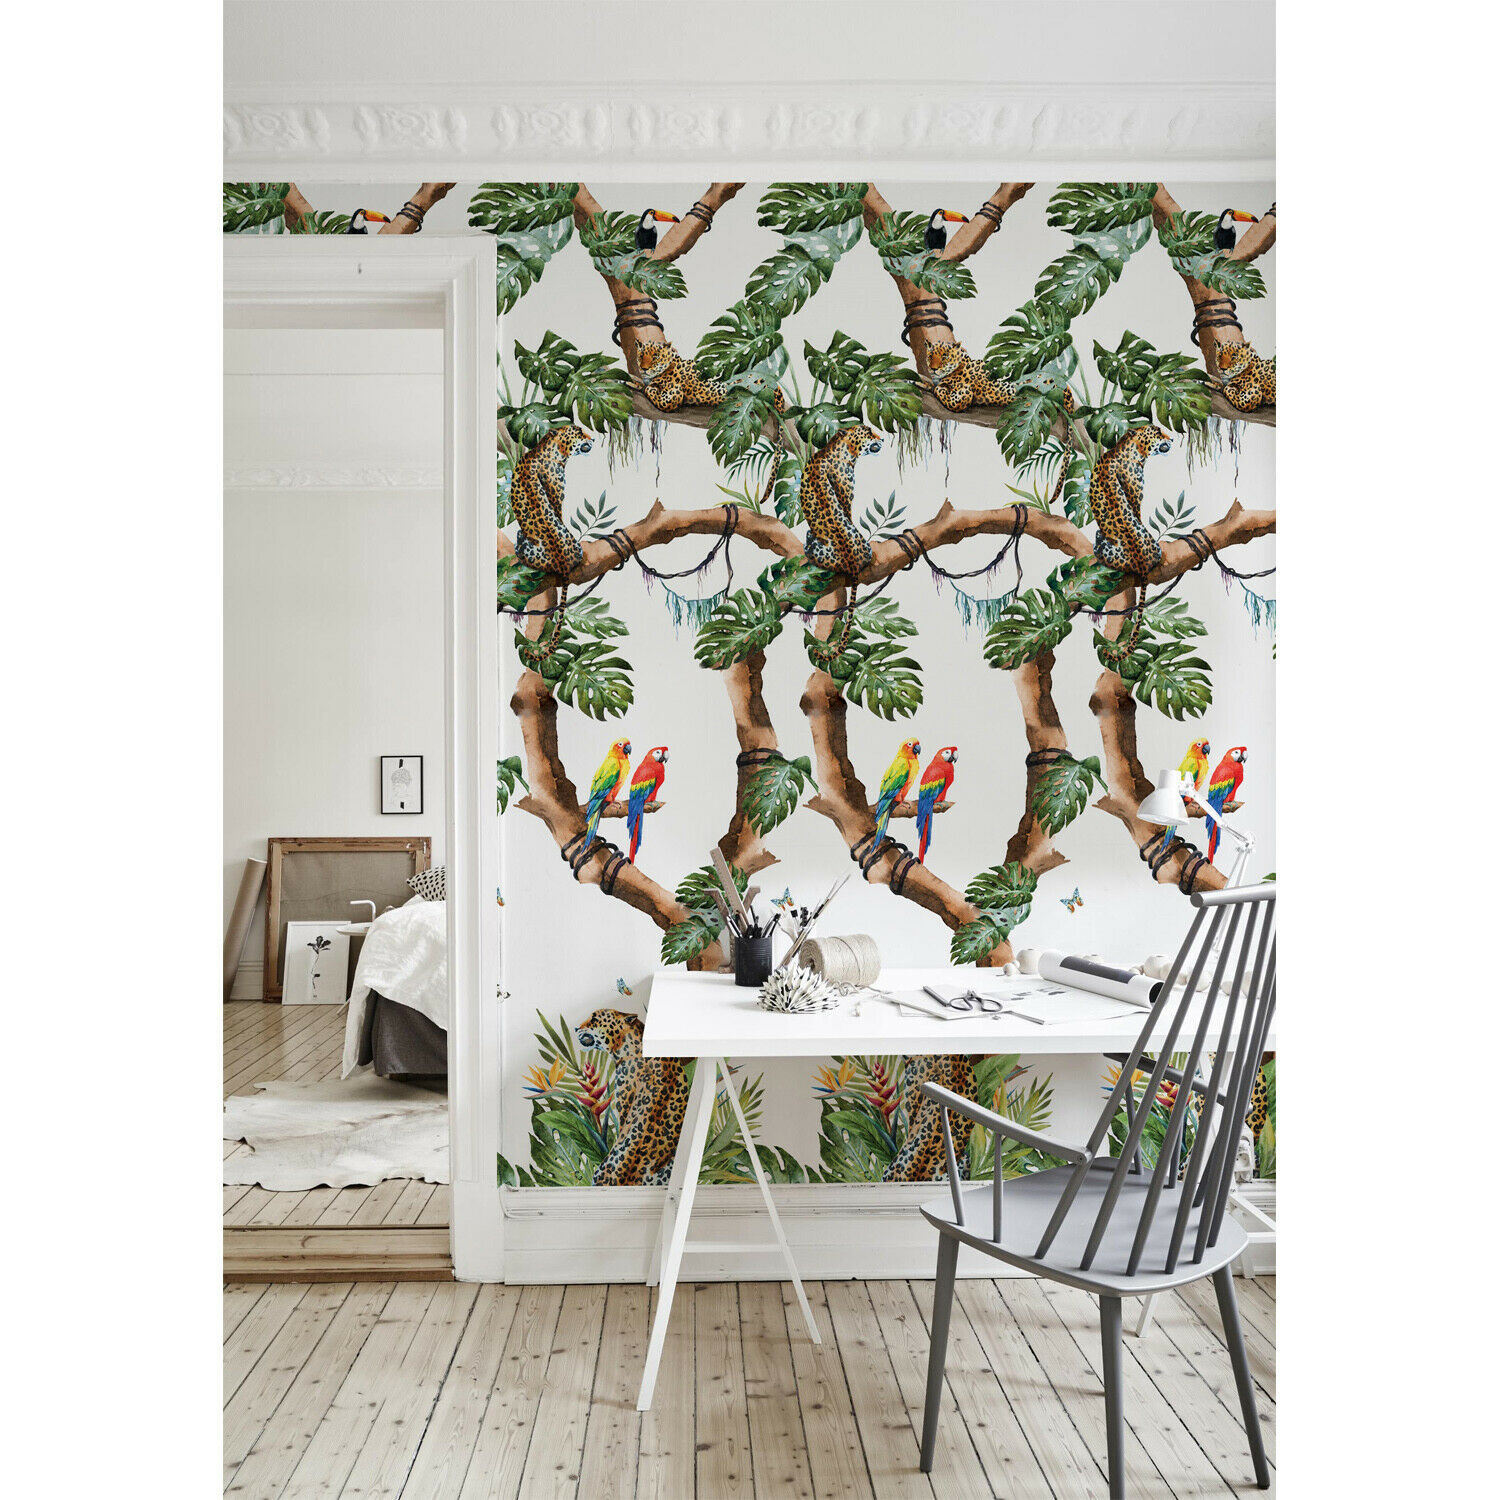 Removable wallpaper Tropical Cheetahs Floral Tropical Wall Covering Mural